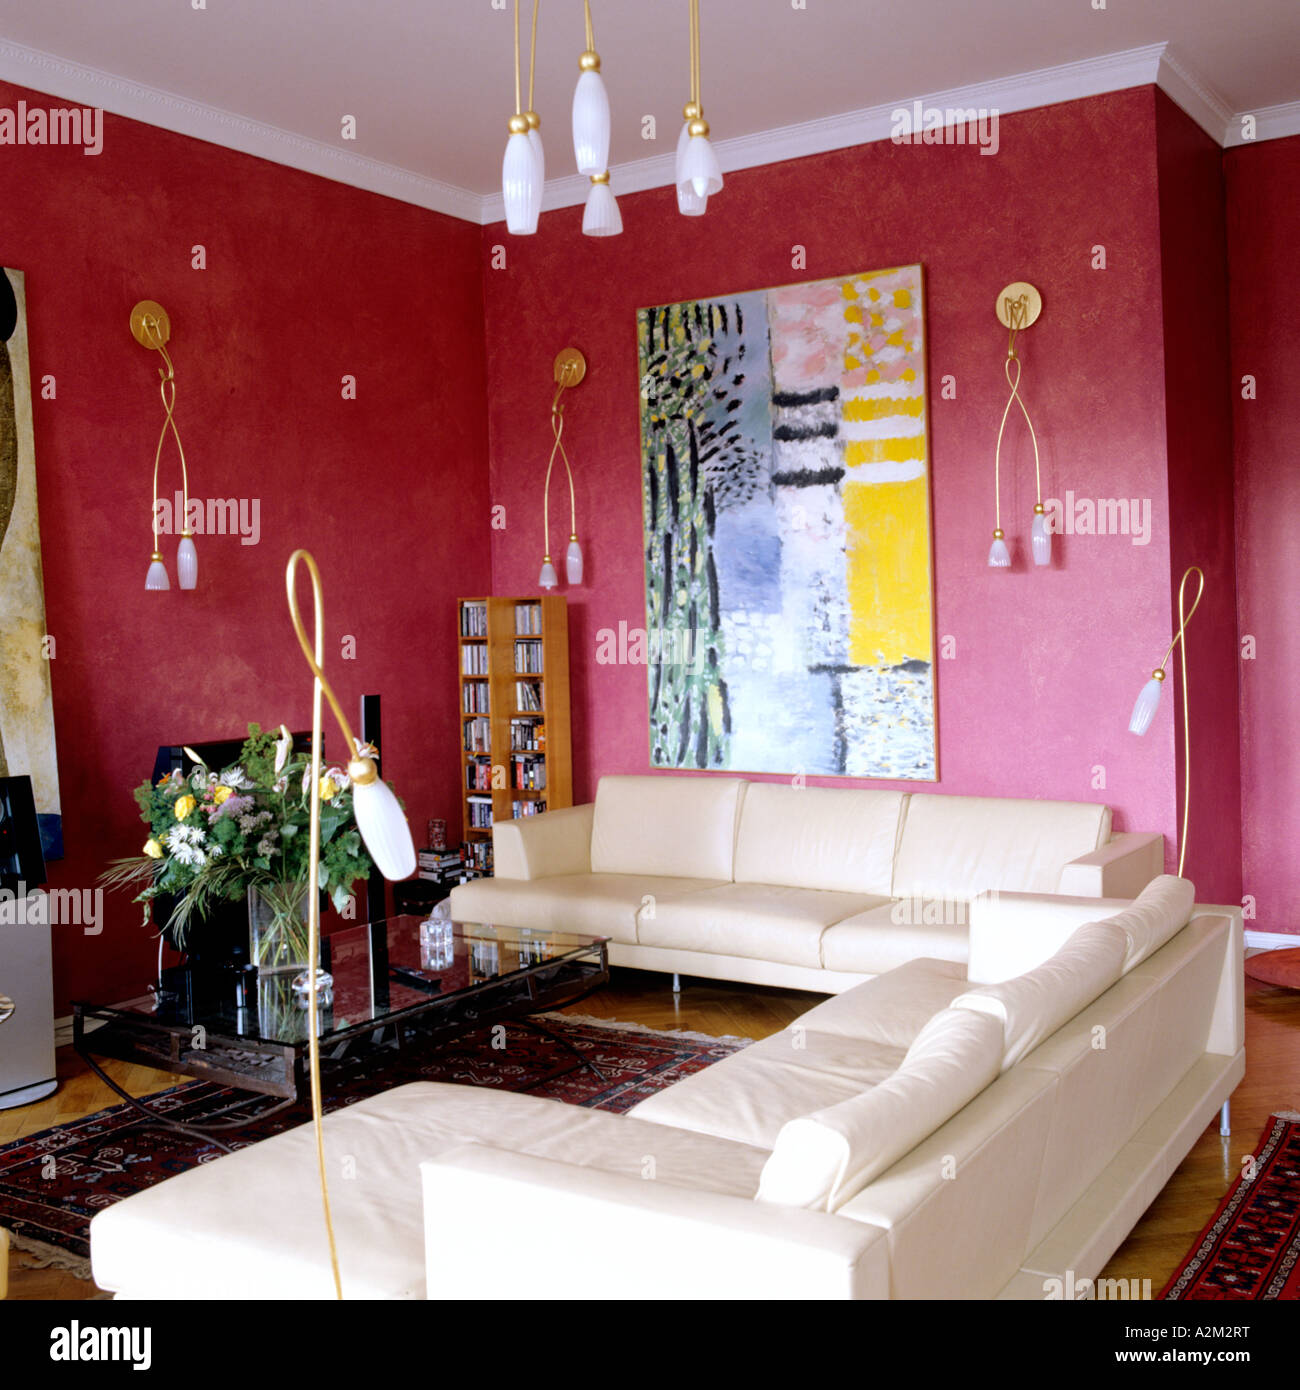 White Leather Sofas In Red Painted Apartment Of St Petersburg Art